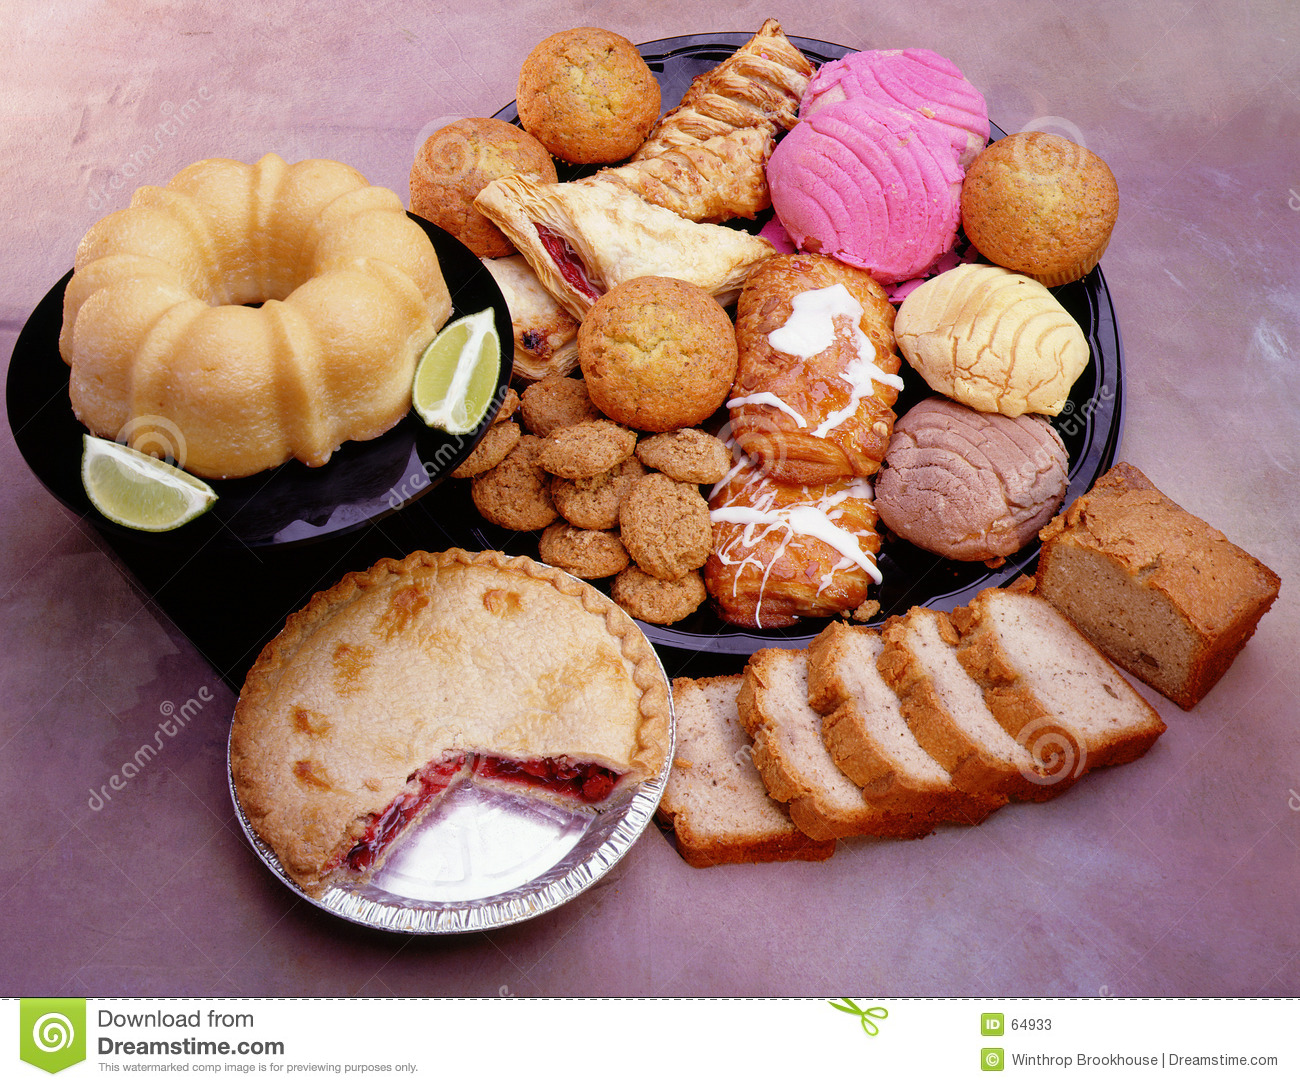 Bakery Goods Stock Photos - Image: 64933